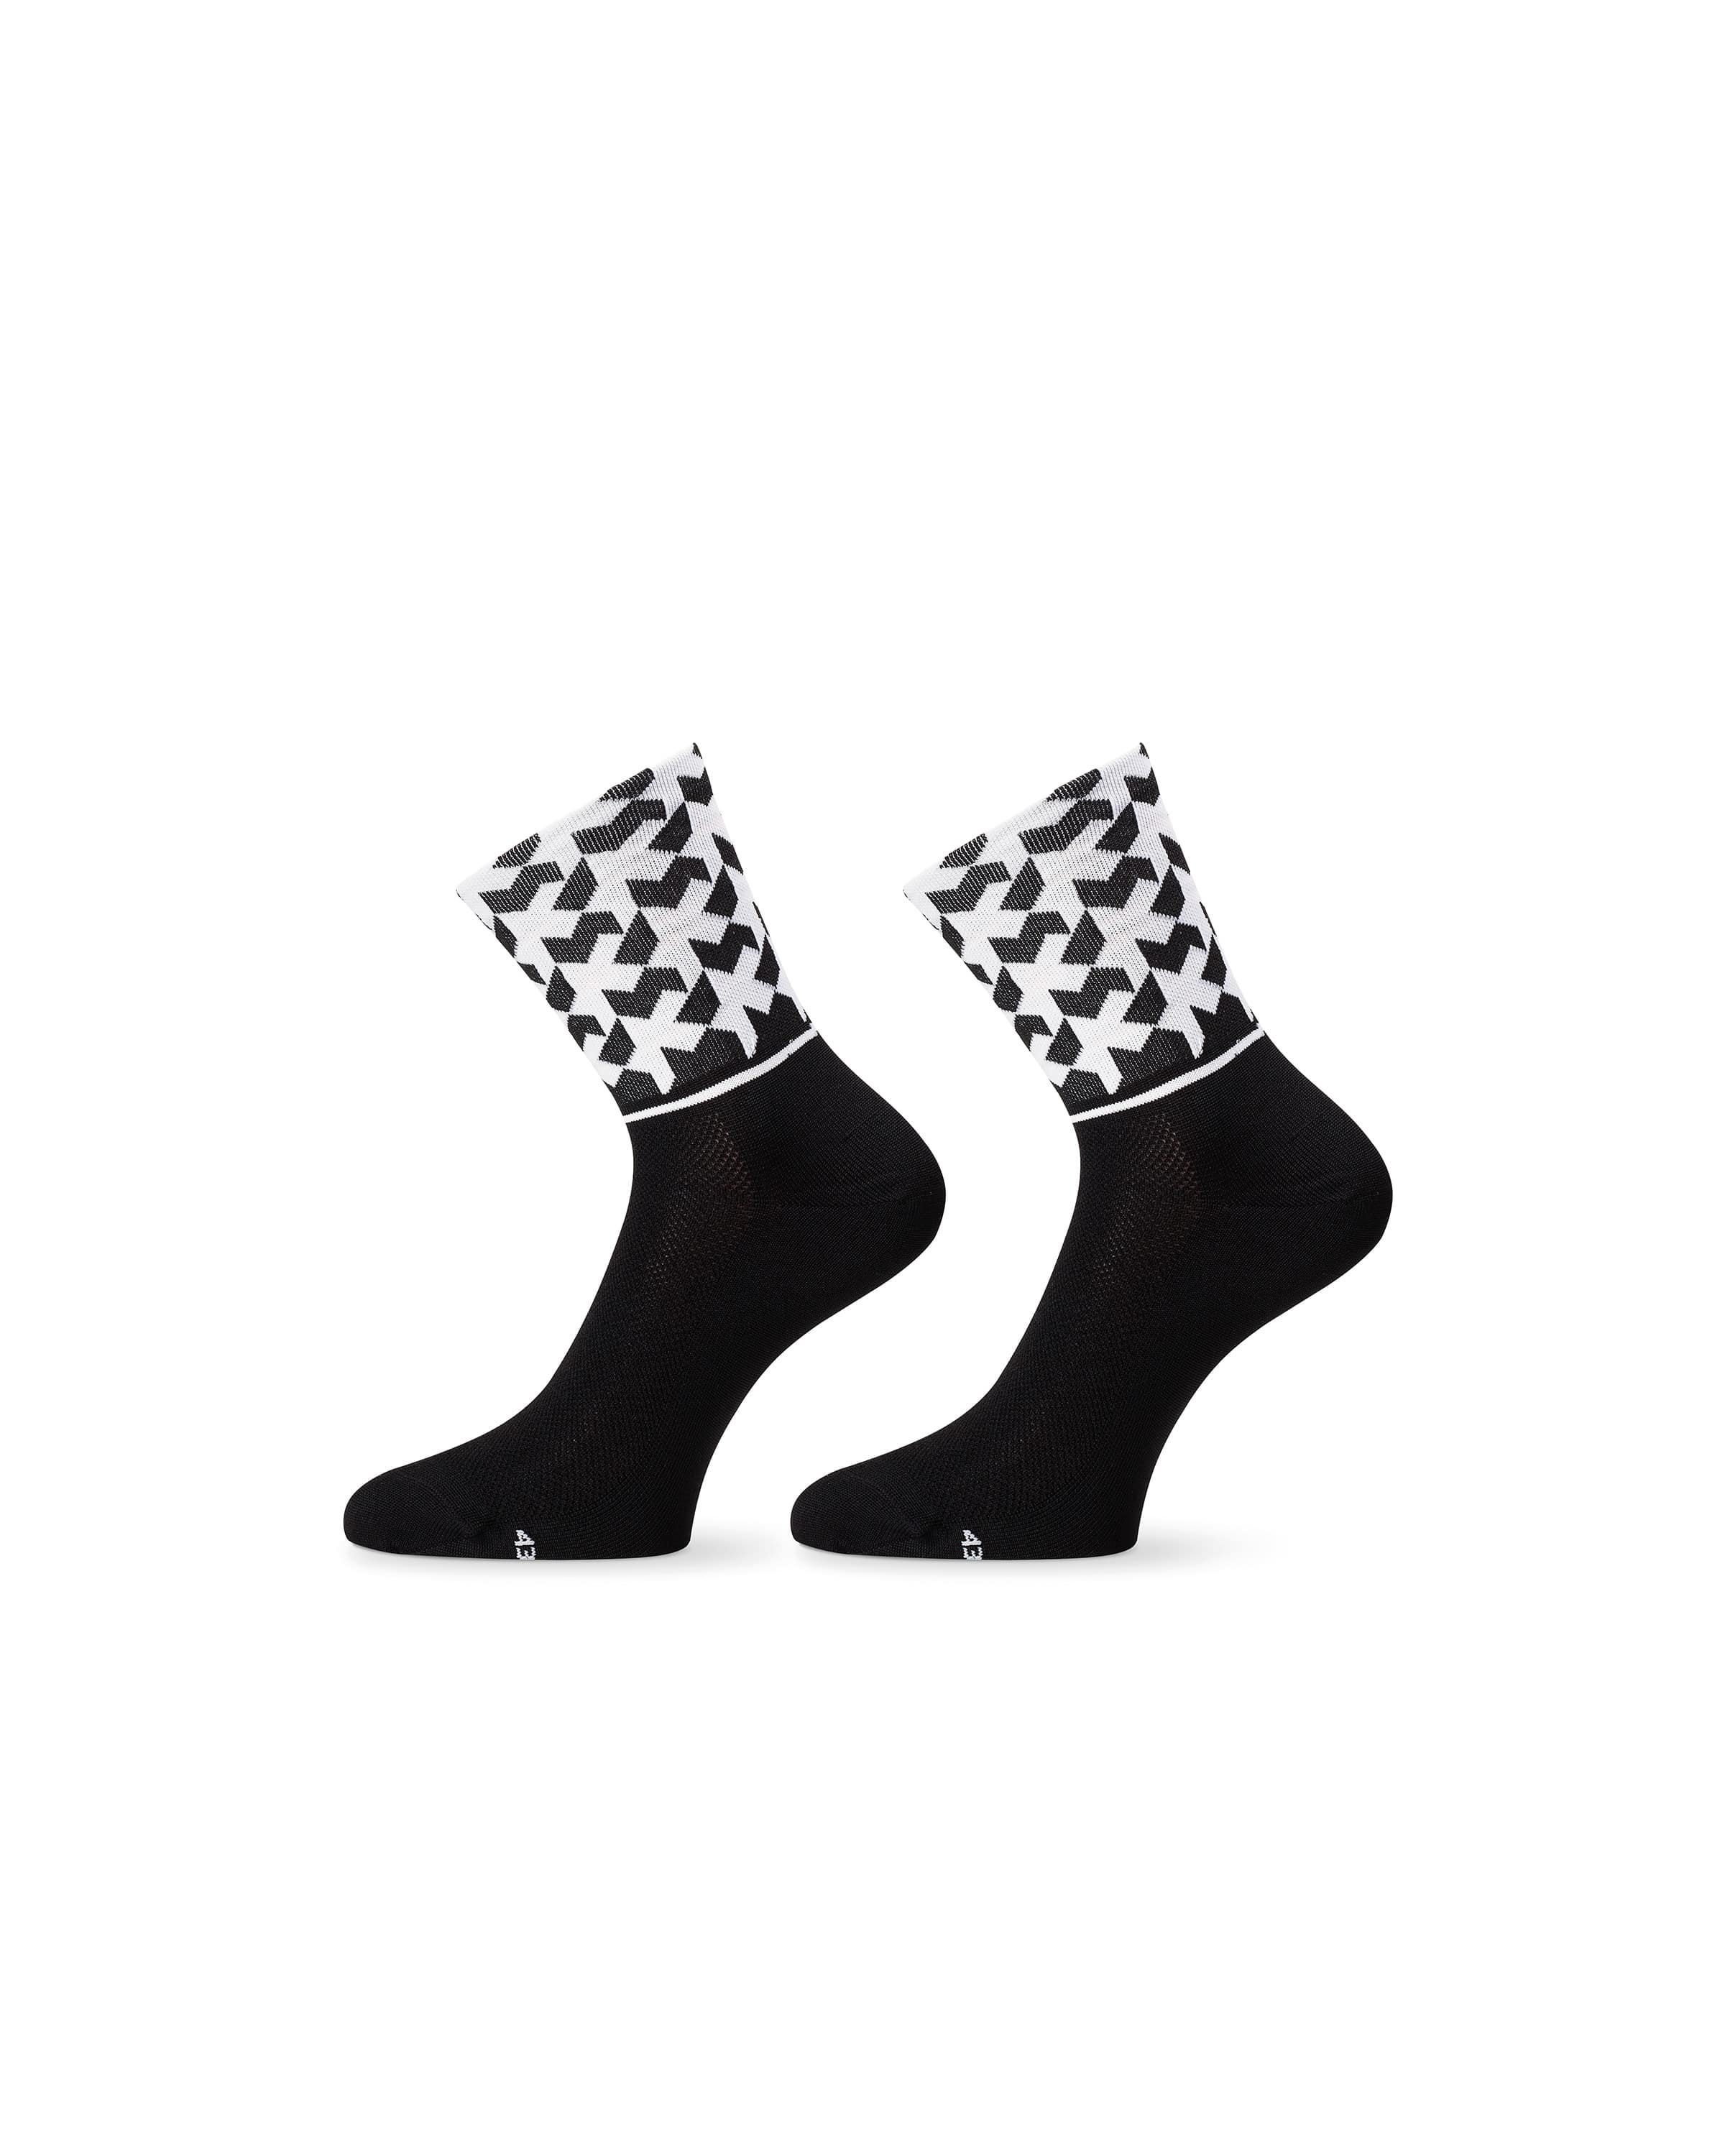 Носки Унисекс ASSOS monogramSock evo8 blackSeries